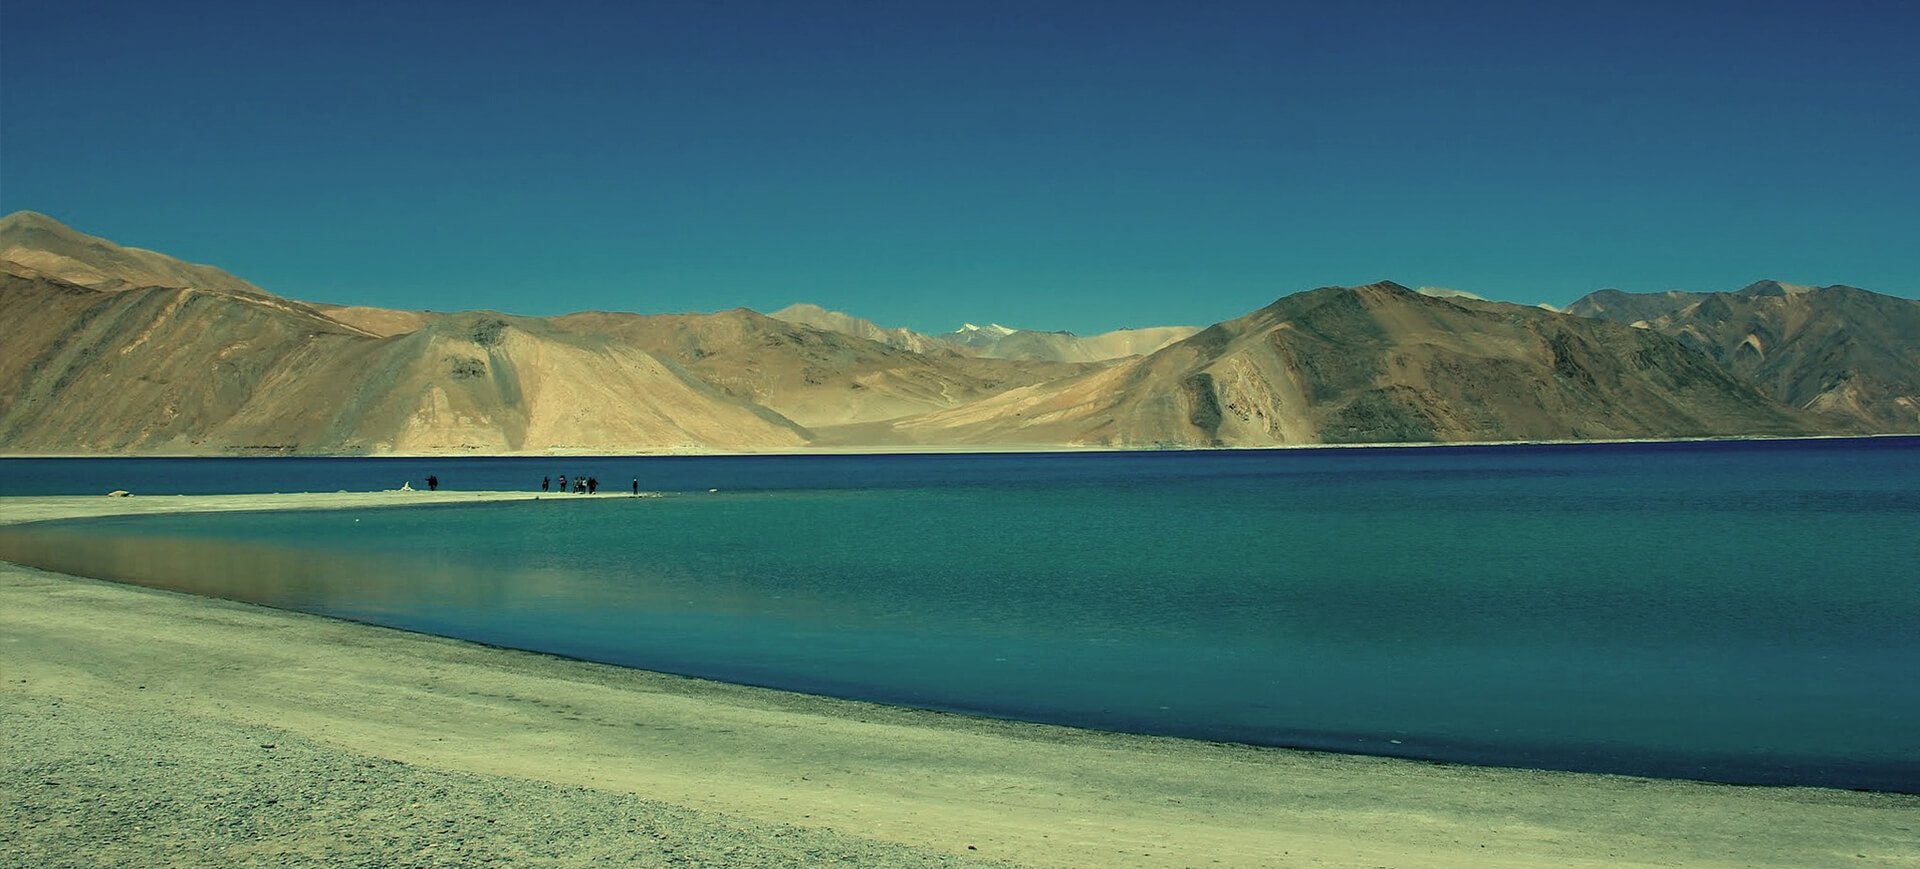 Rumtse to Tsomiriri Lake, Ladakh